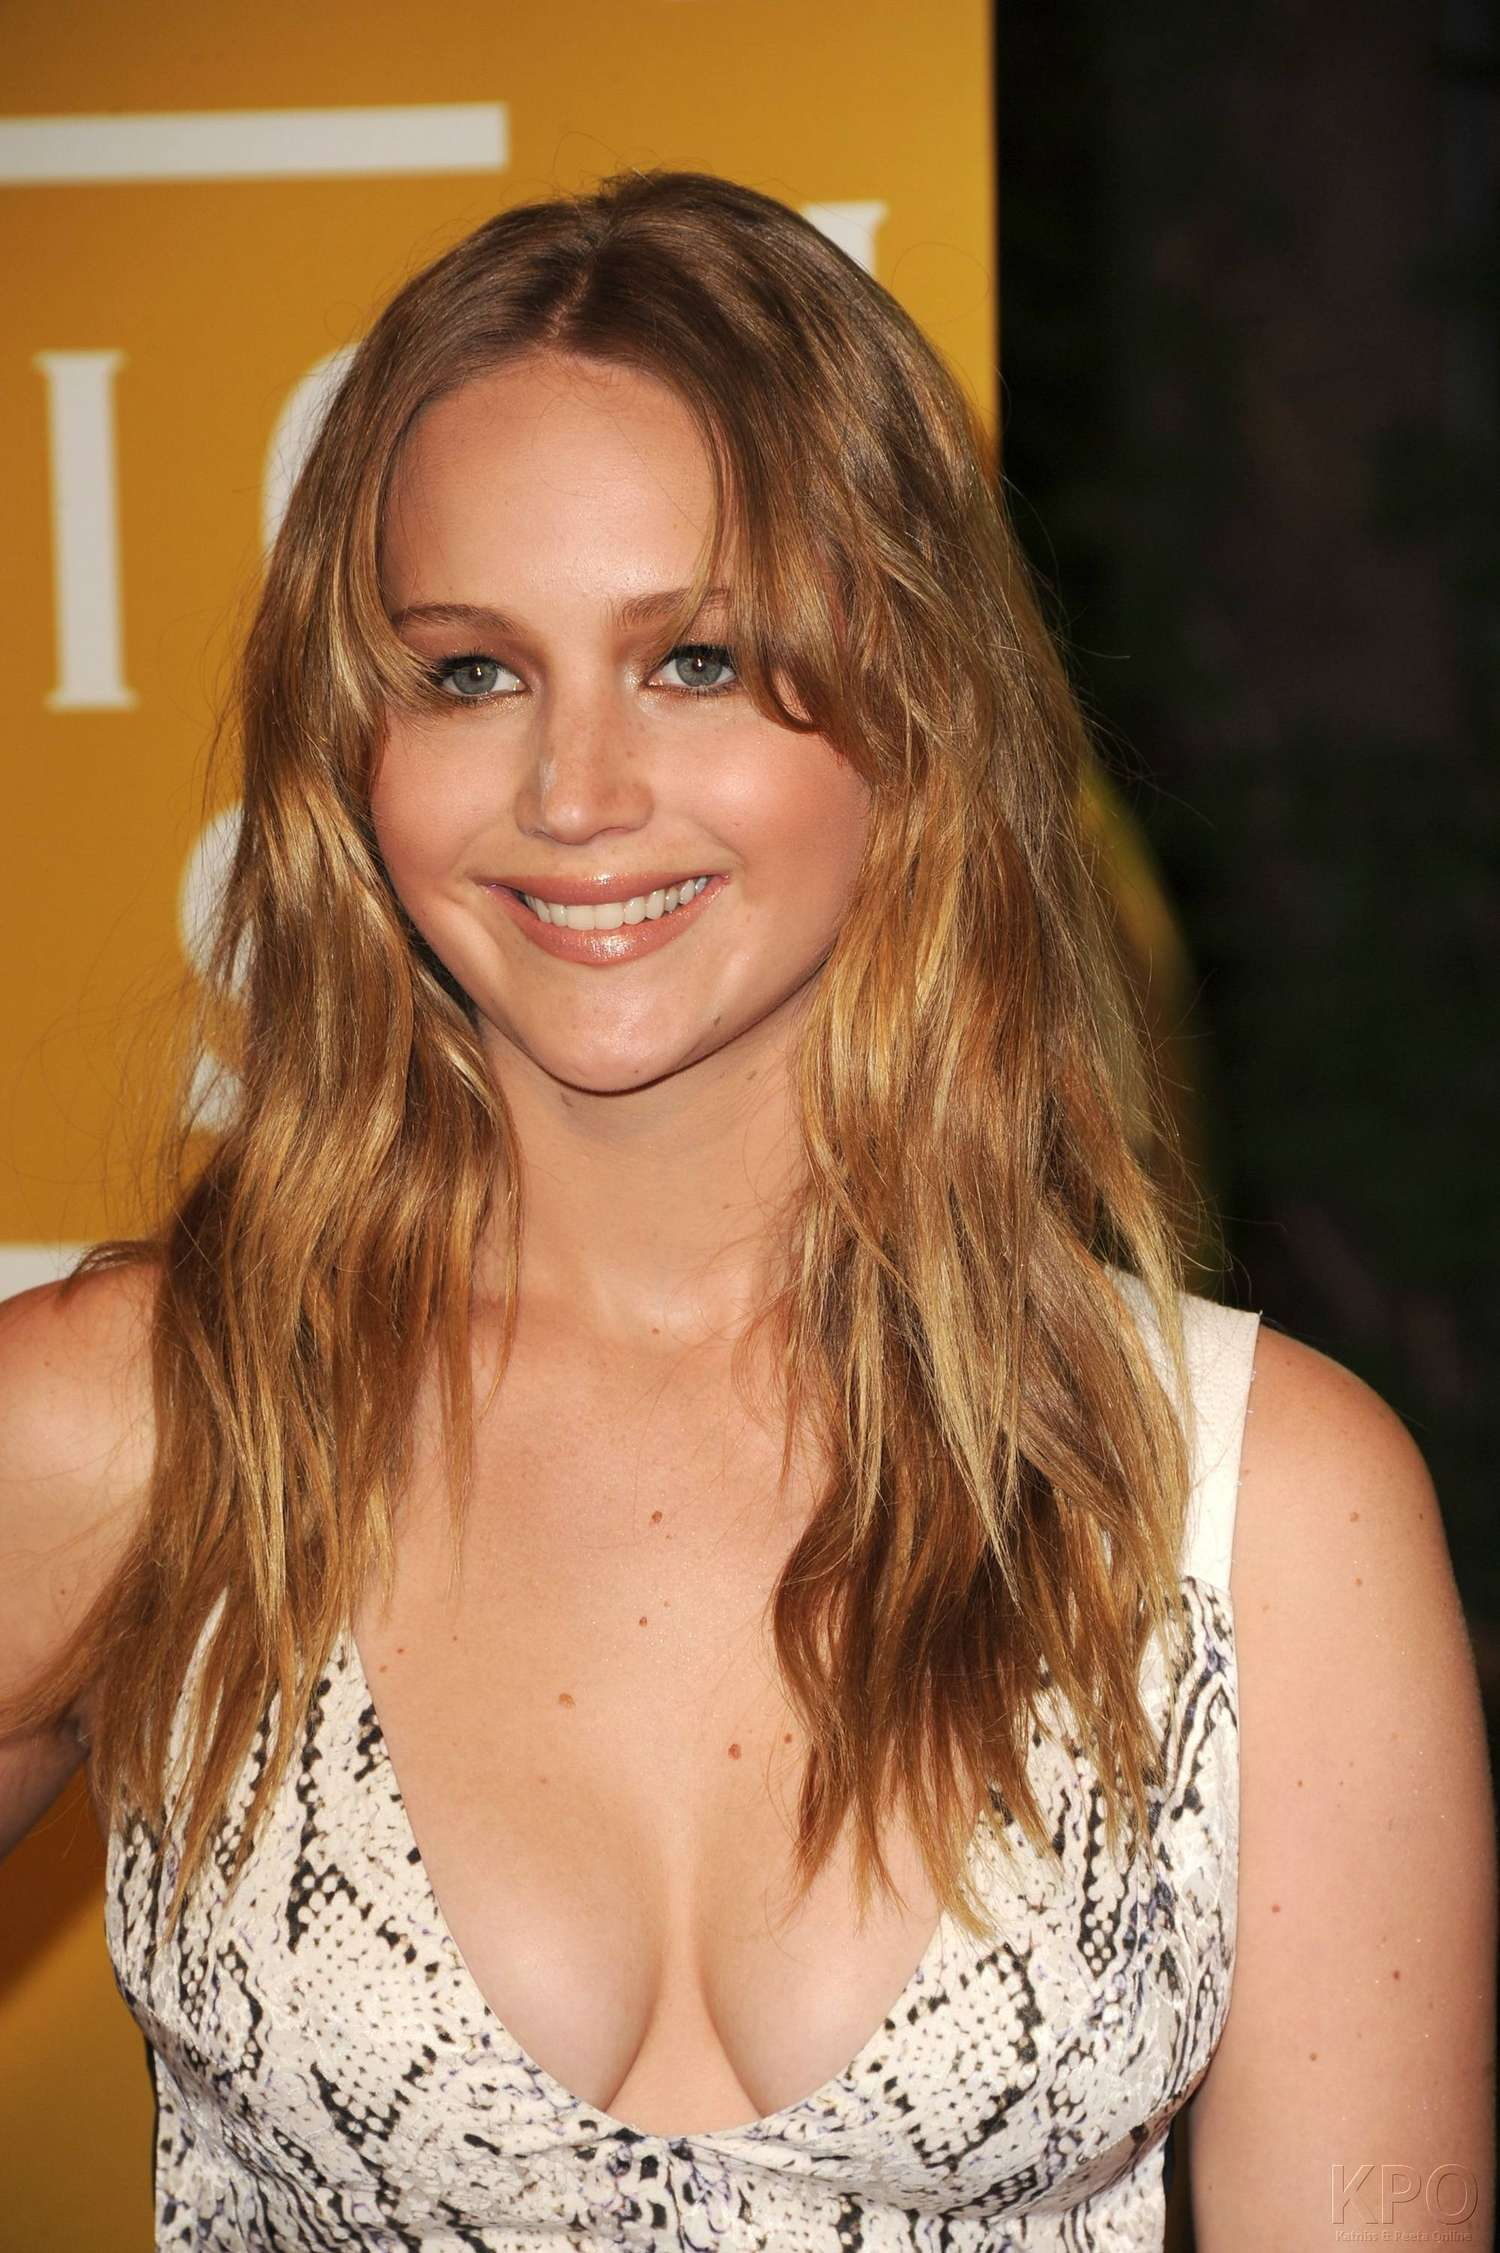 Cleavage Jennifer Lawrence nudes (87 foto and video), Topless, Hot, Instagram, see through 2015